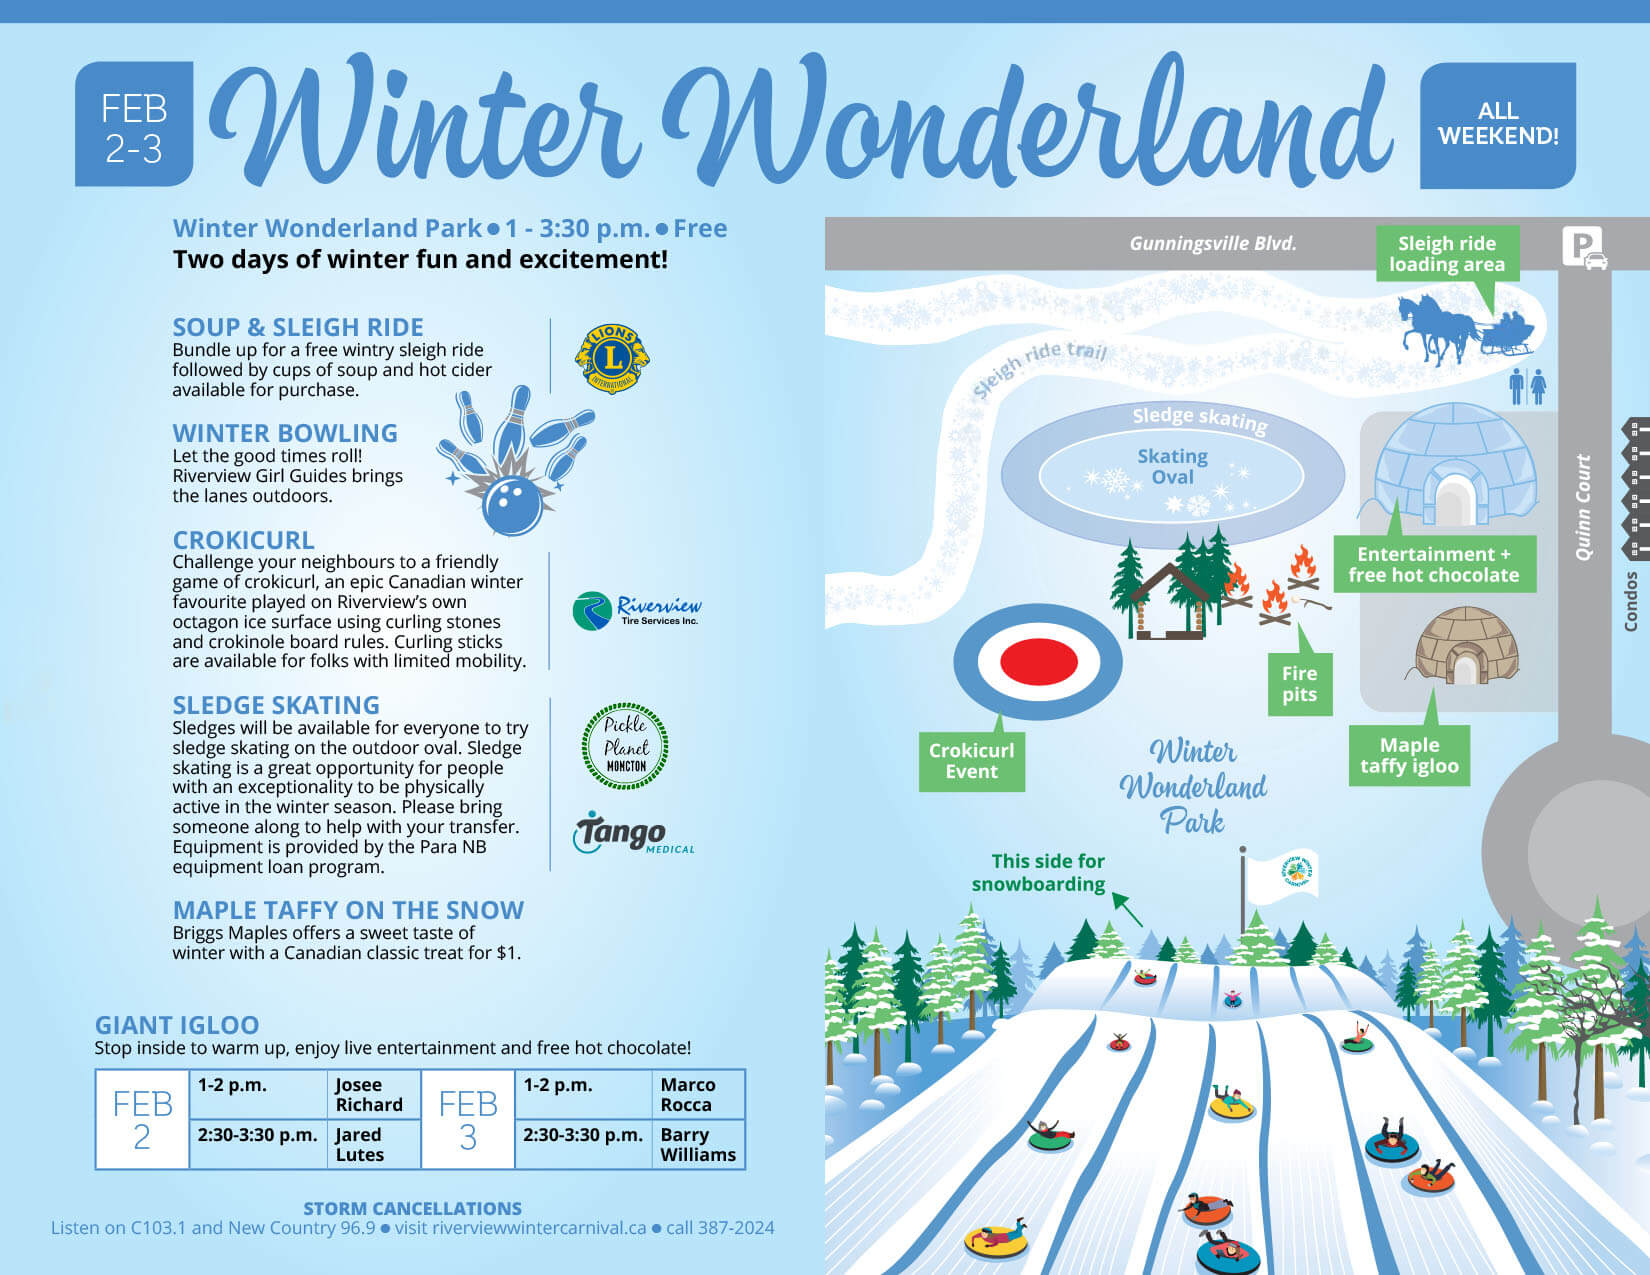 Riverview Winter Carnival Winter Wonderland Park sleigh rides skating sledge accessible activity crokicurl sleding sliding